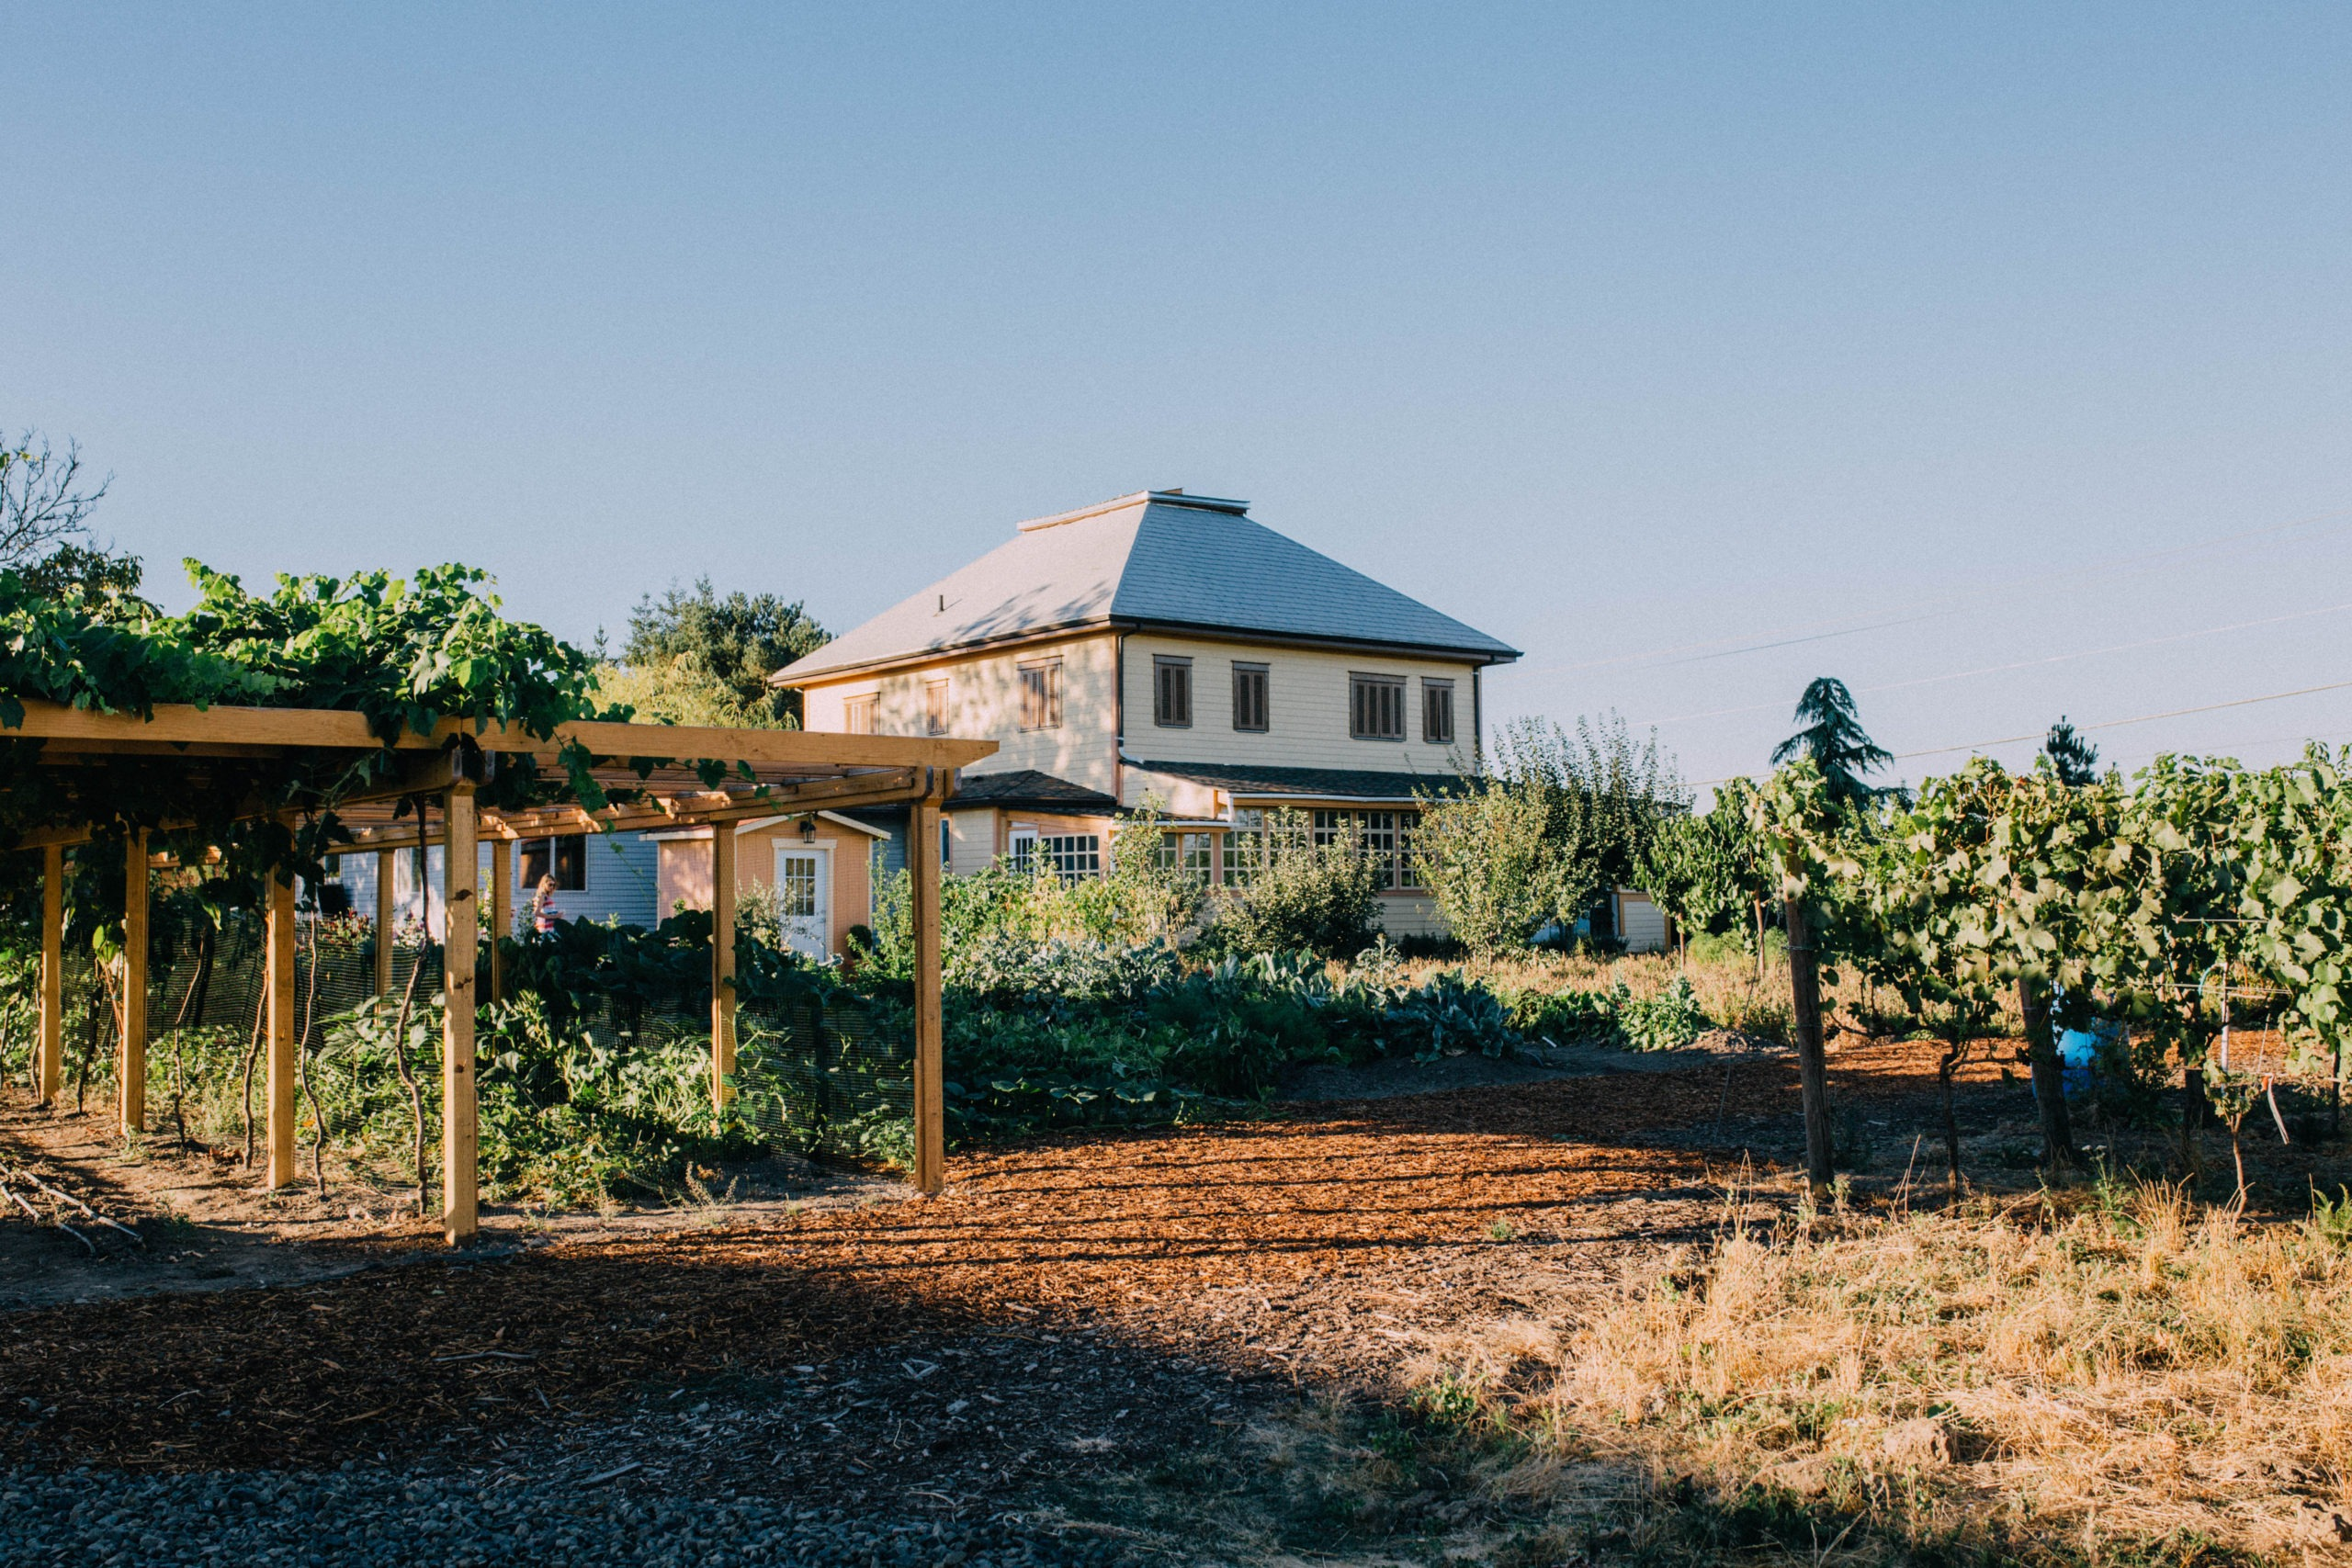 Kookoolan Farms – Vertically Integrated Farming Opportunity